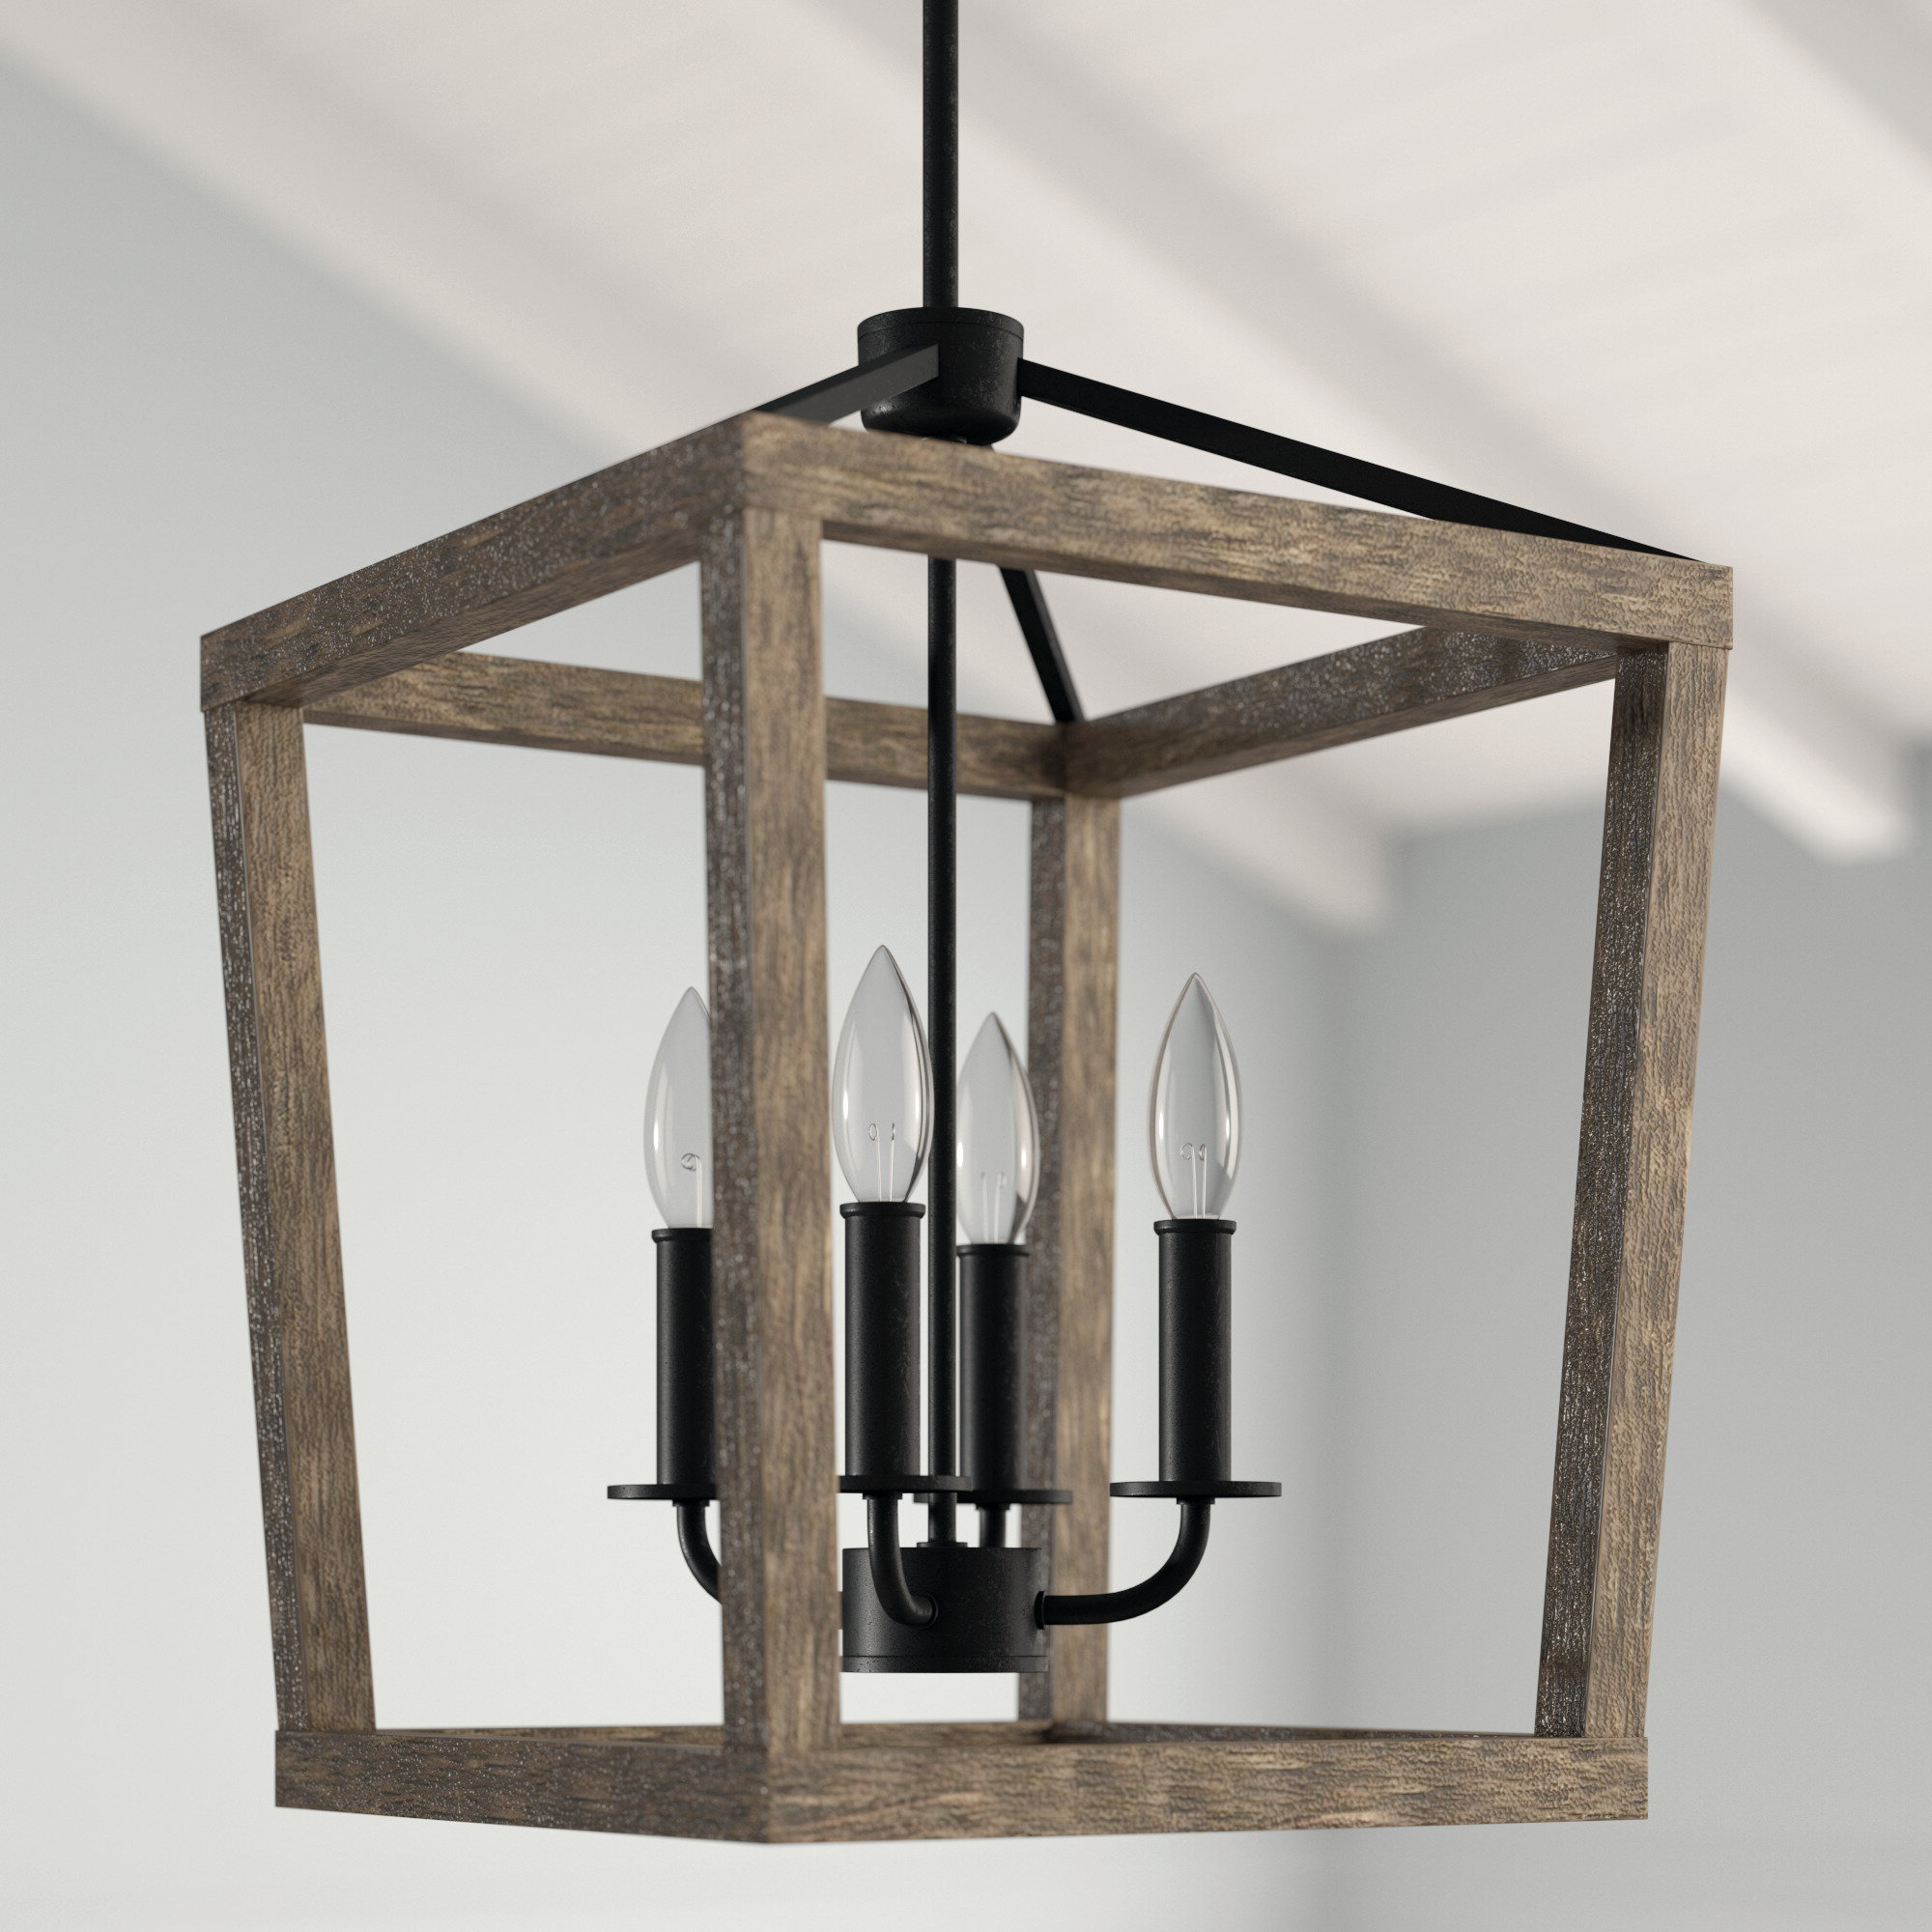 Birch Lane™ Heritage Natarsha 4 Light Lantern Geometric Pendant Within Most Up To Date Louanne 3 Light Lantern Geometric Pendants (View 20 of 25)